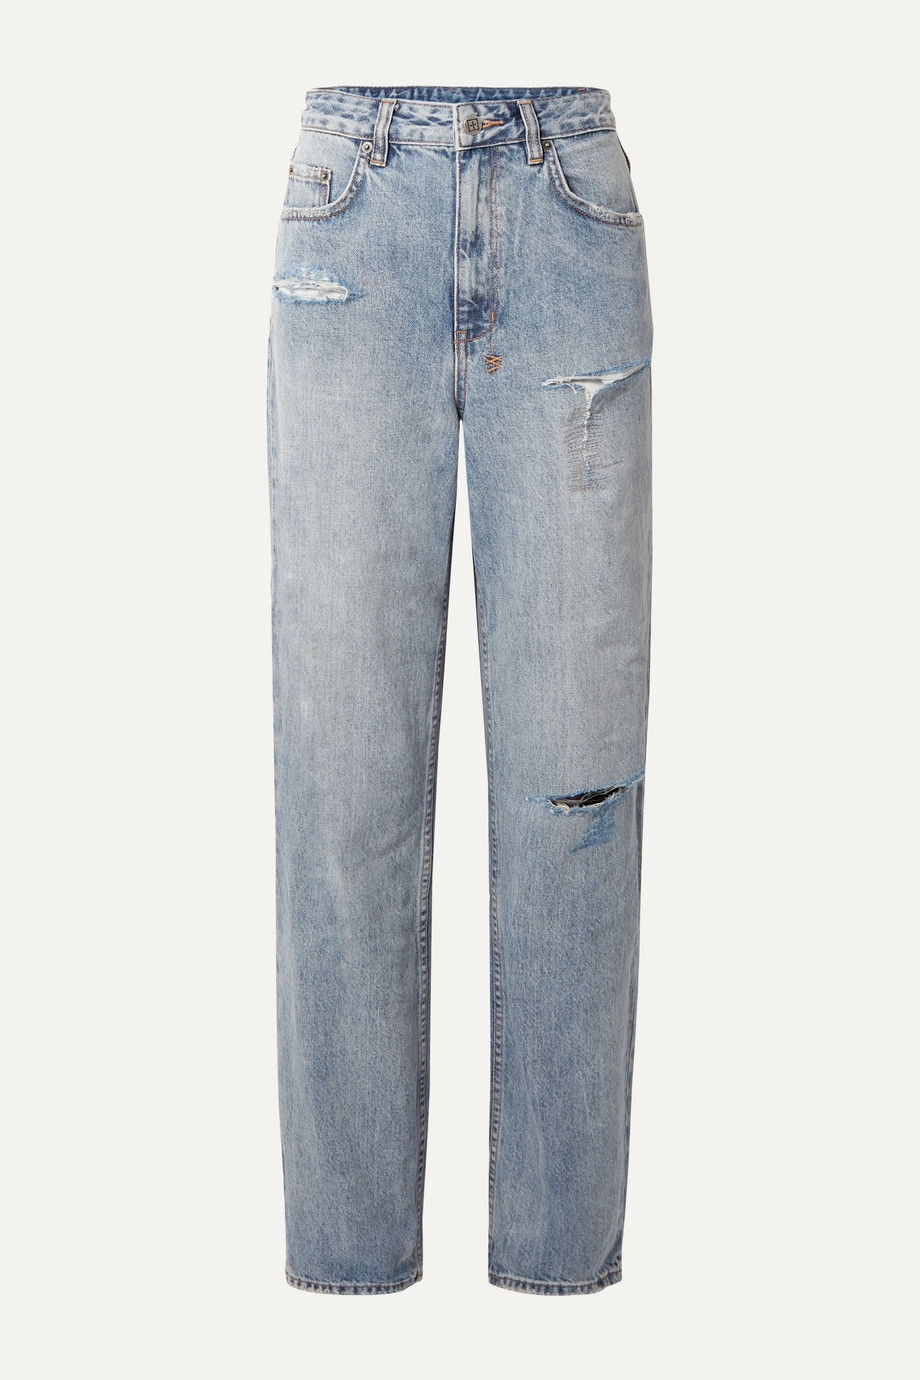 Exact Product: Kendall Jenner Playback Skream Trashed Flash Jeans, Brand: Ksubi x, Available on: net-a-porter.com, Price: $168